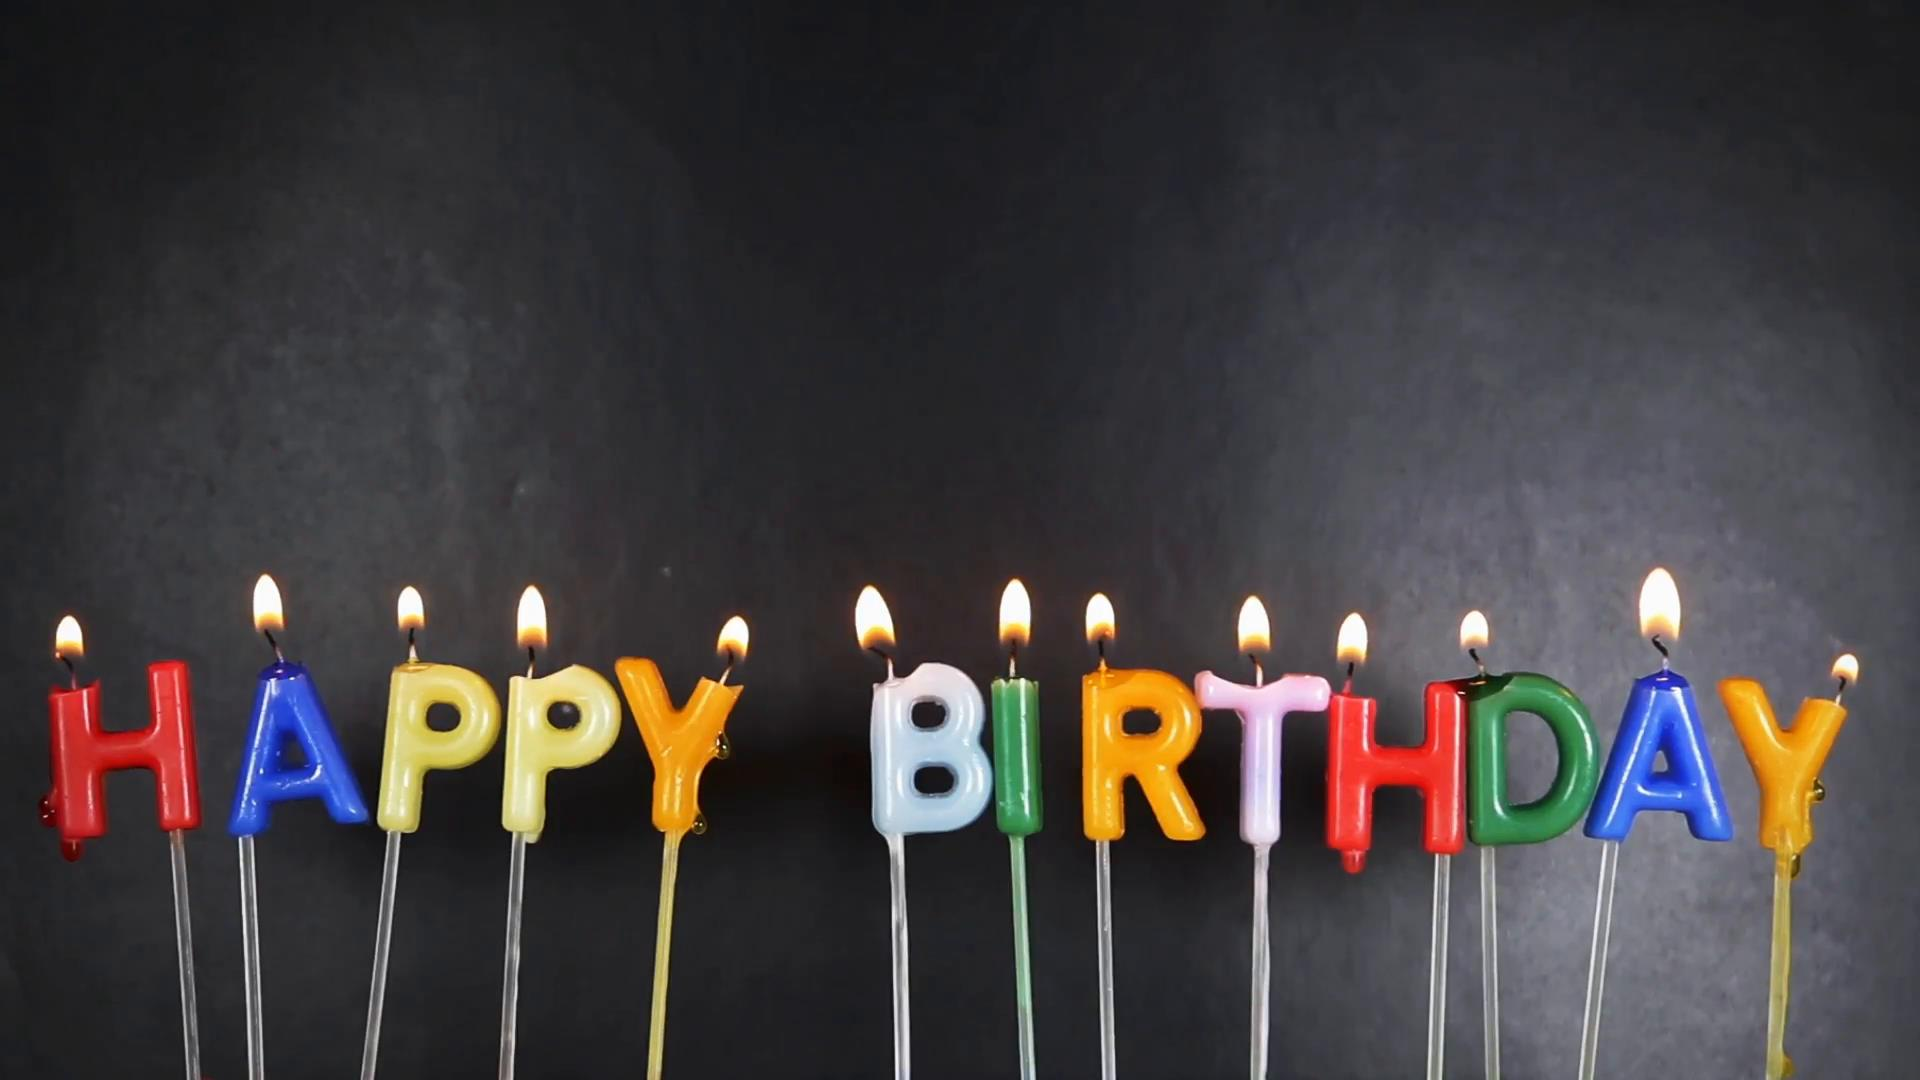 birthday candles ; happy-birthday-candles-on-black-background_4kfzqdjge__F0000